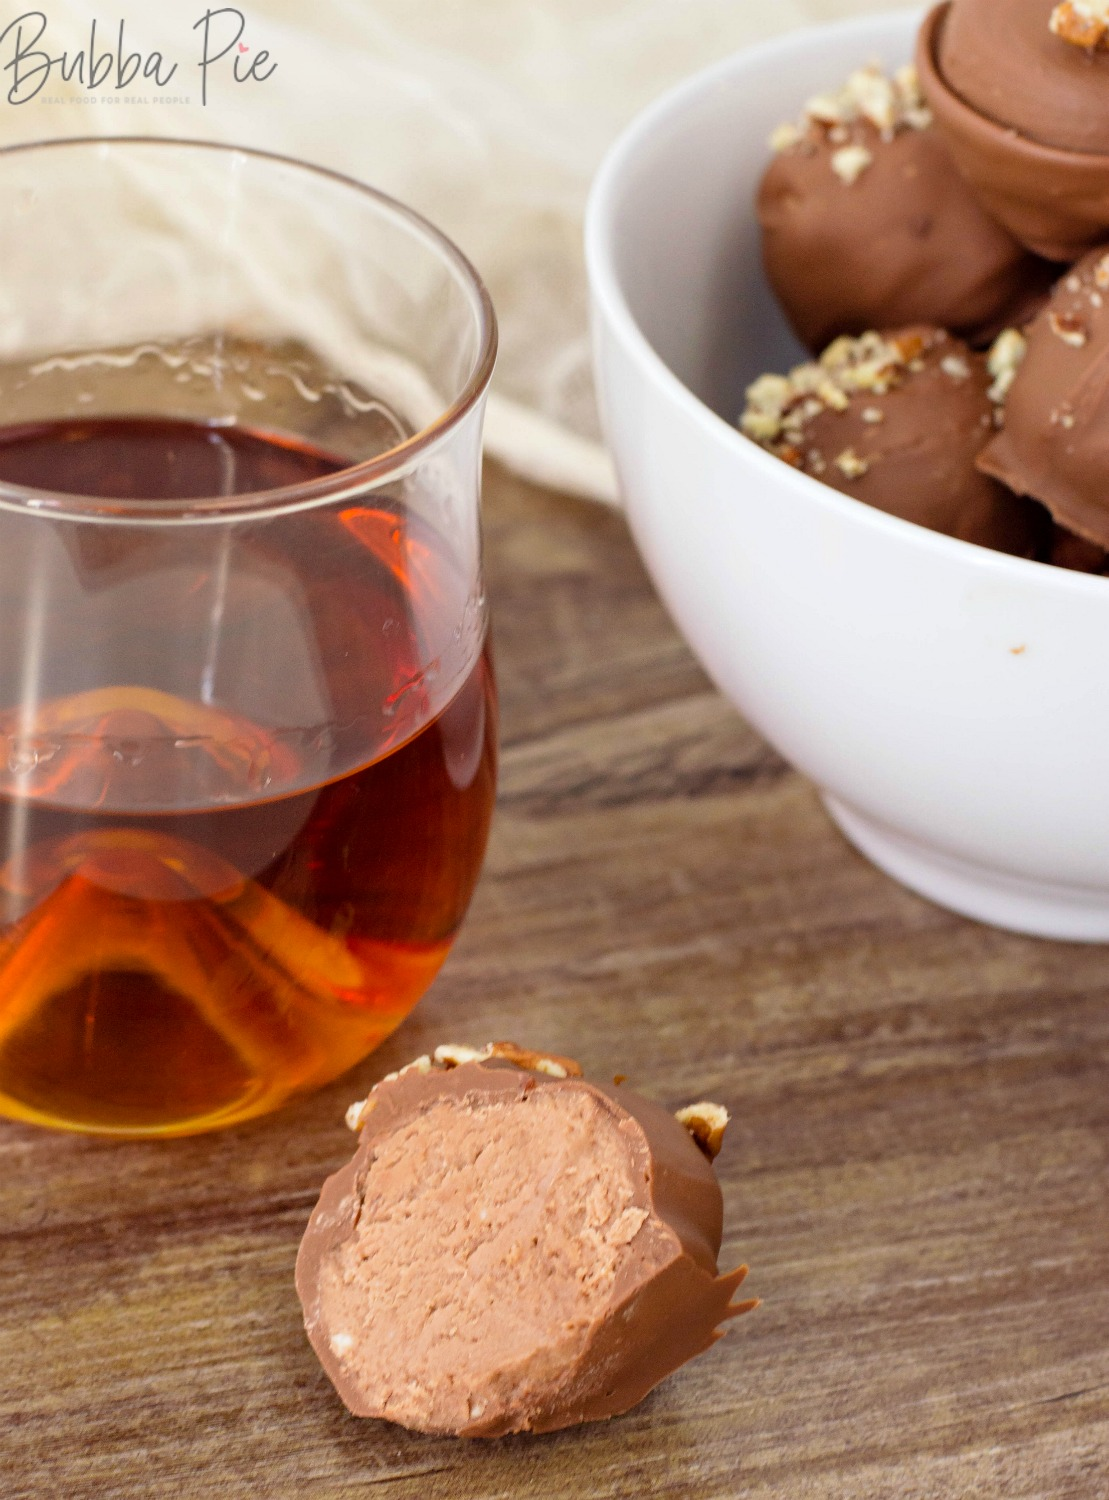 Bourbon Balls can be made with whisky too!